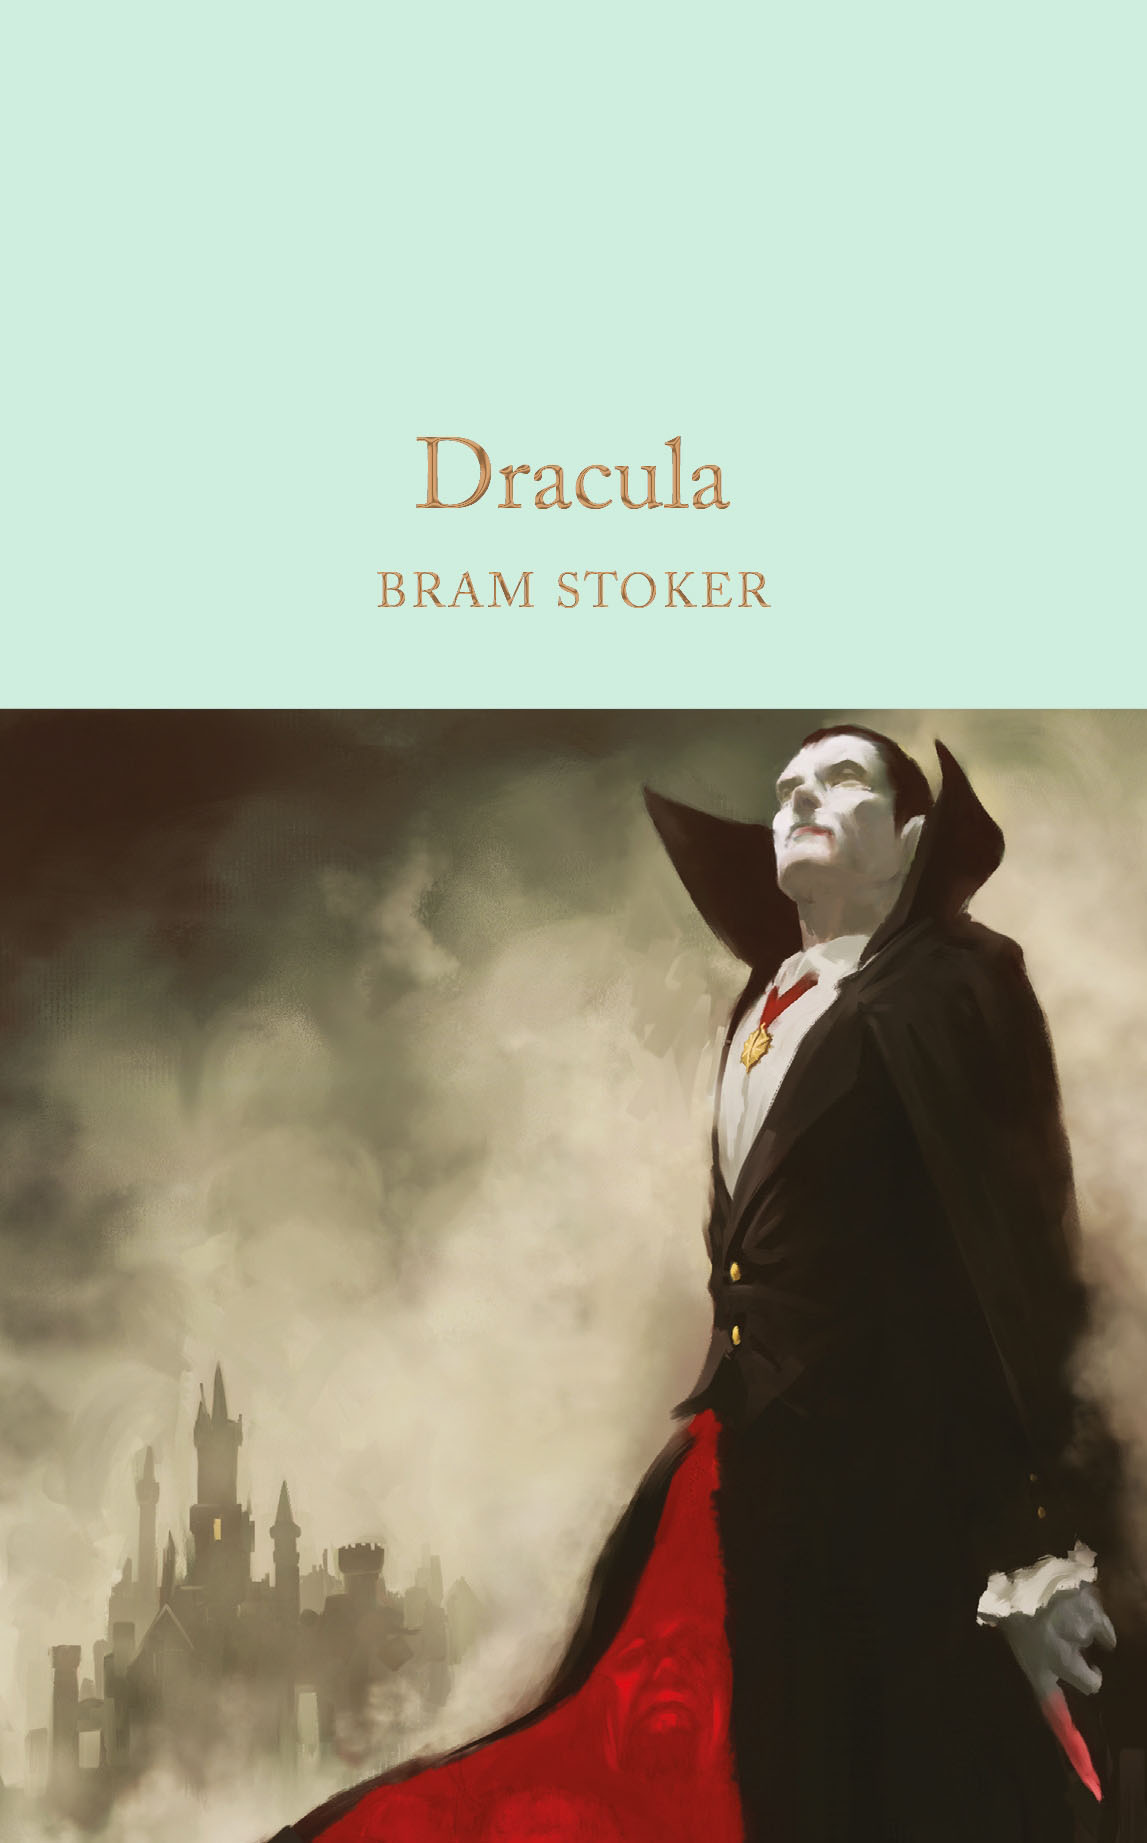 Dracula riggs r library of souls